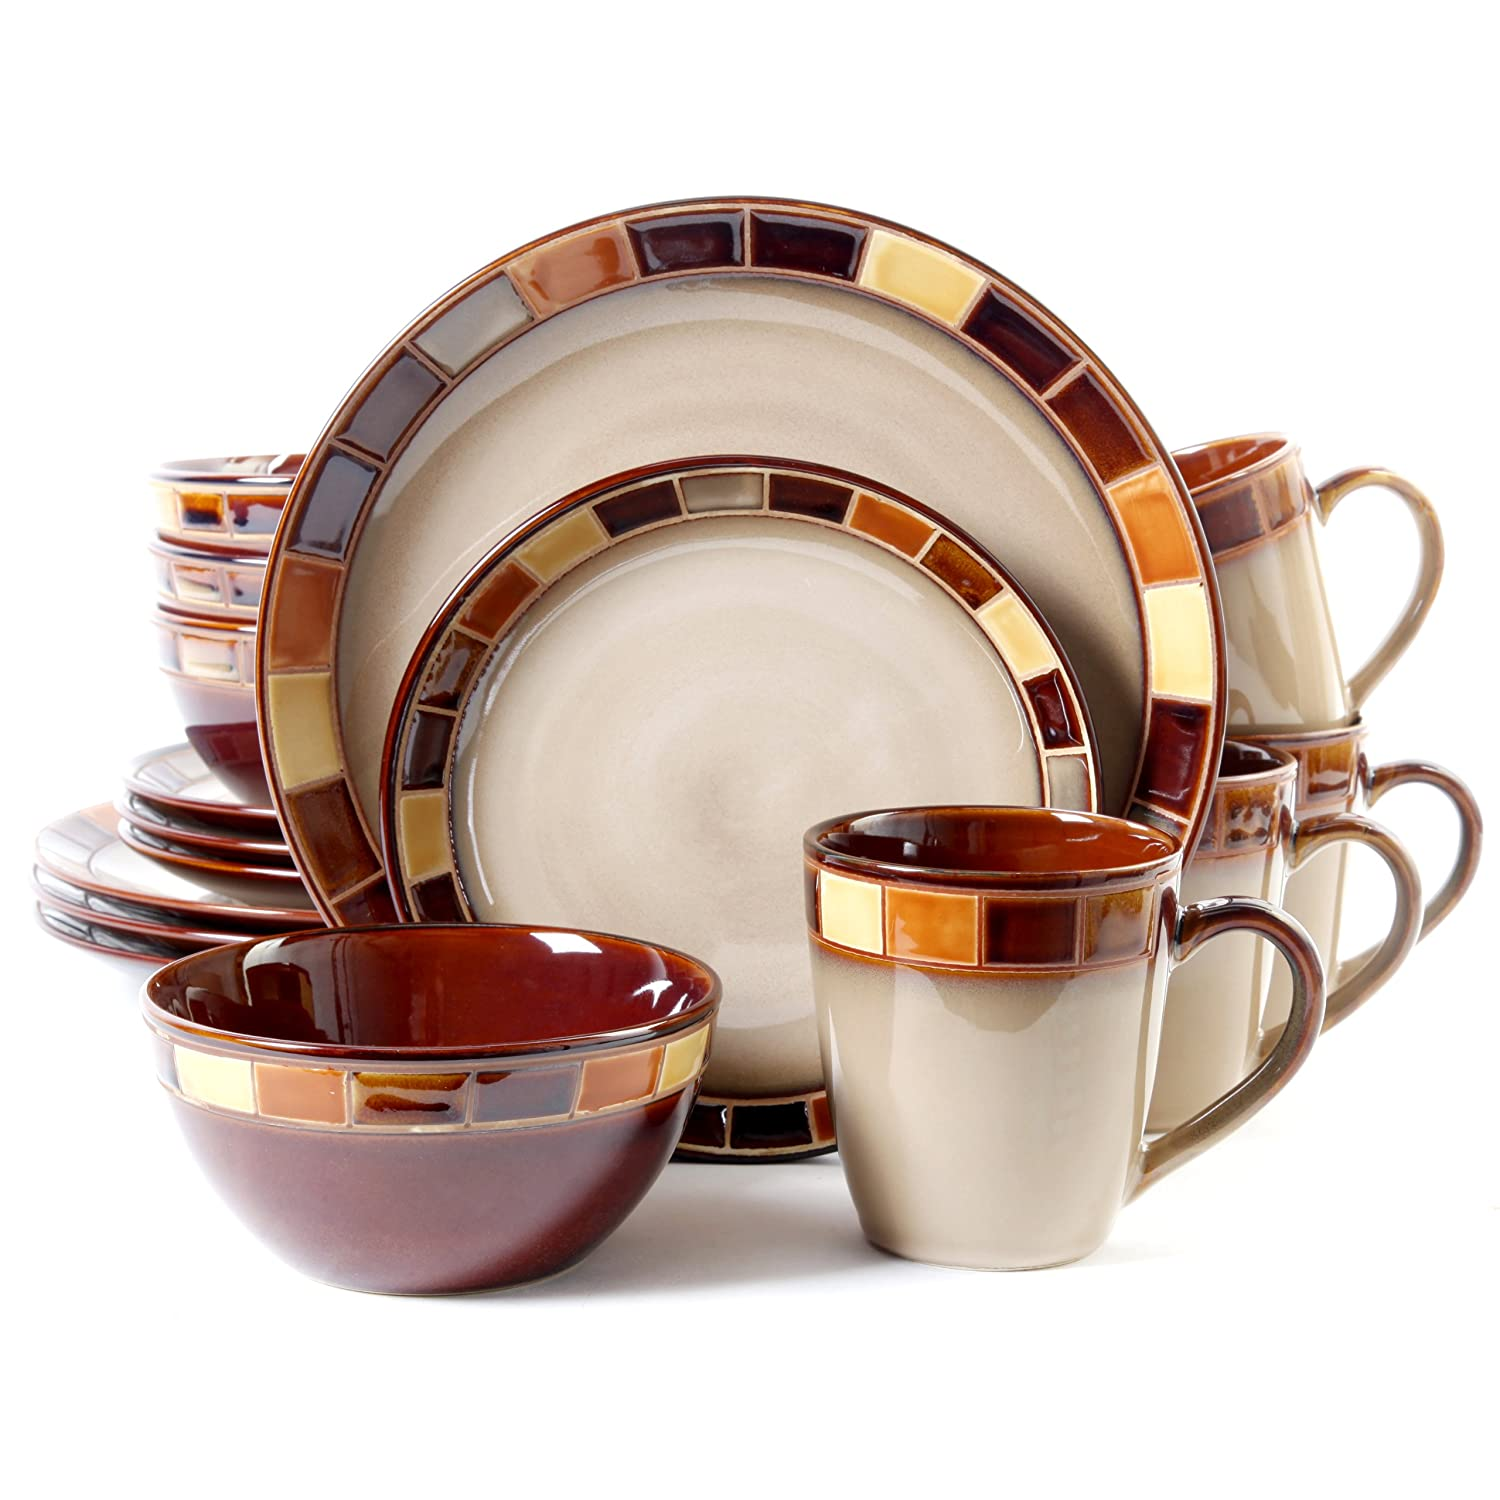 Gibson Casa Estebana 16-piece Dinnerware Set Service for 4 Beige and Brown  sc 1 st  Amazon.com & Amazon.com: Dinnerware Sets: Home u0026 Kitchen